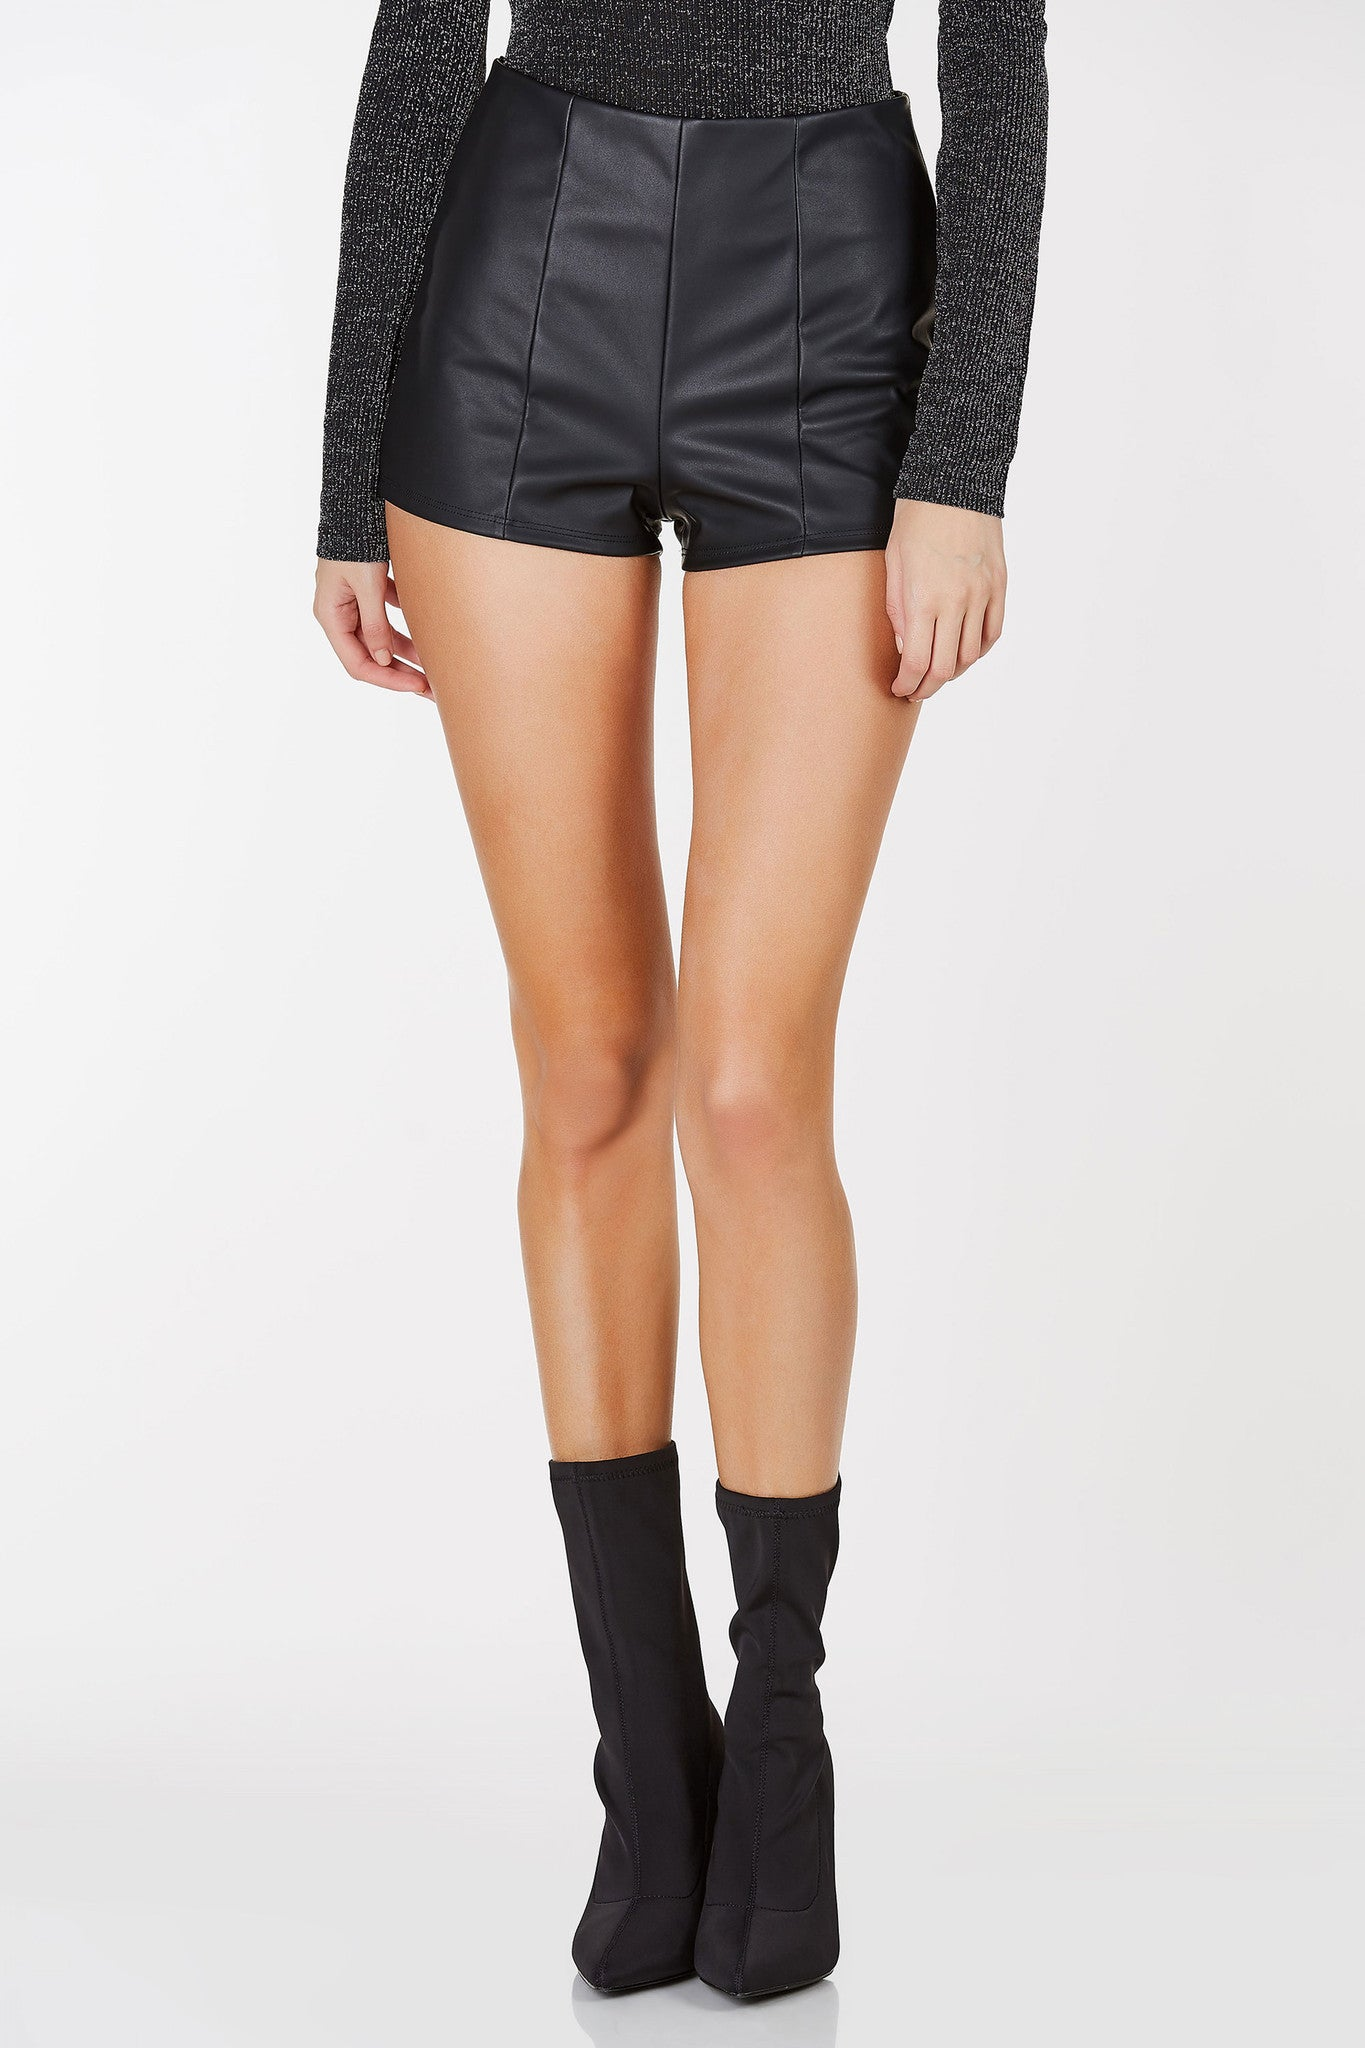 Pleather shorts with double center panels. Invisible back zipper closure.